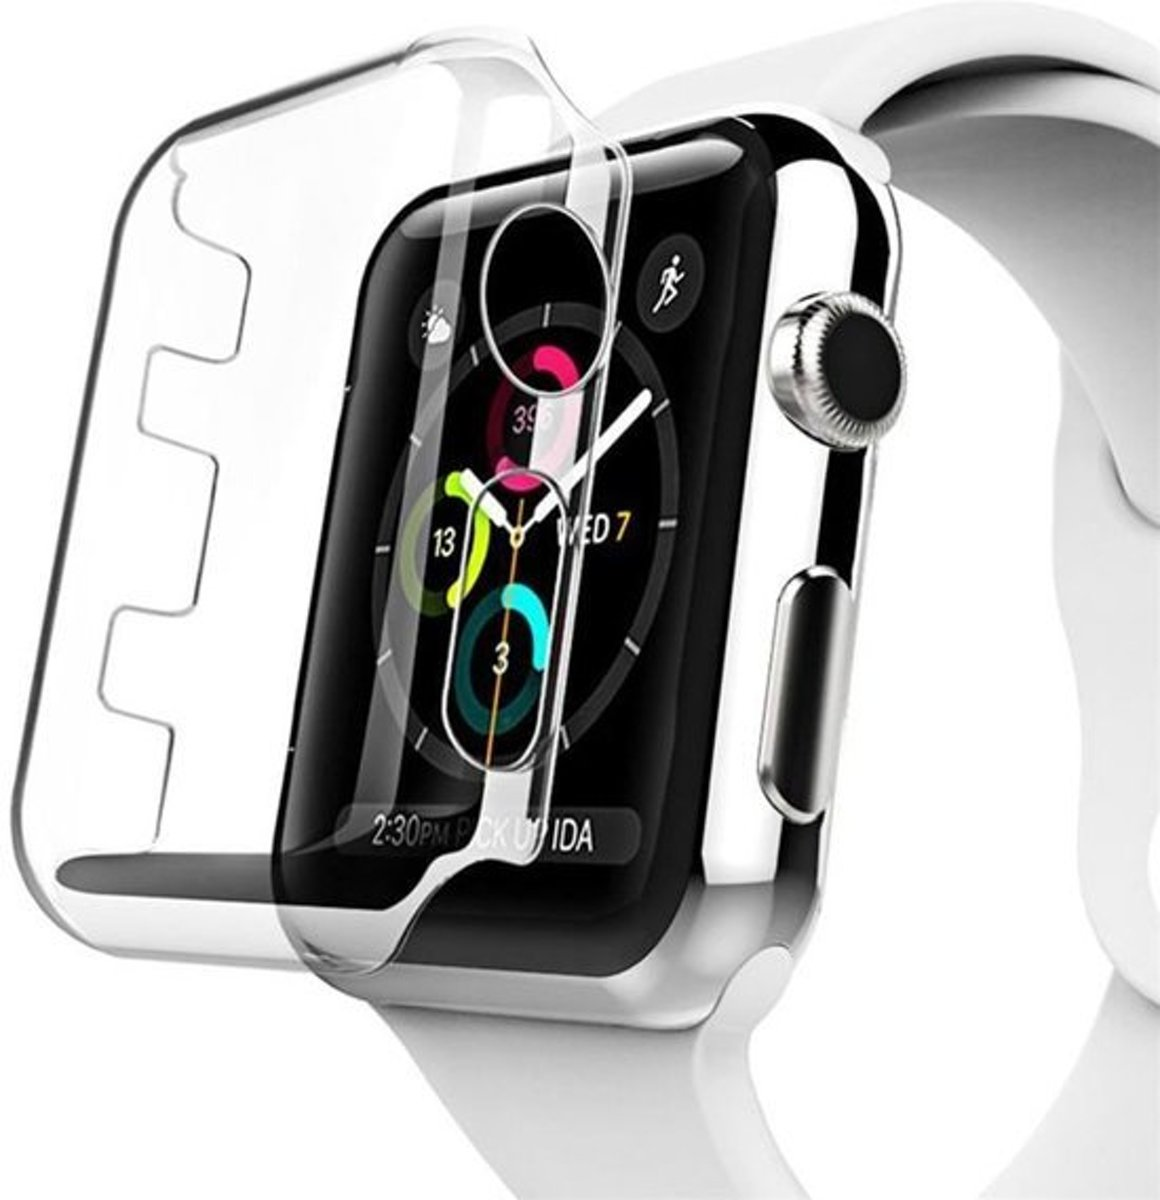 KELERINO. Screen Cover voor Apple Watch Hard Plastic - 4th gen 40mm kopen